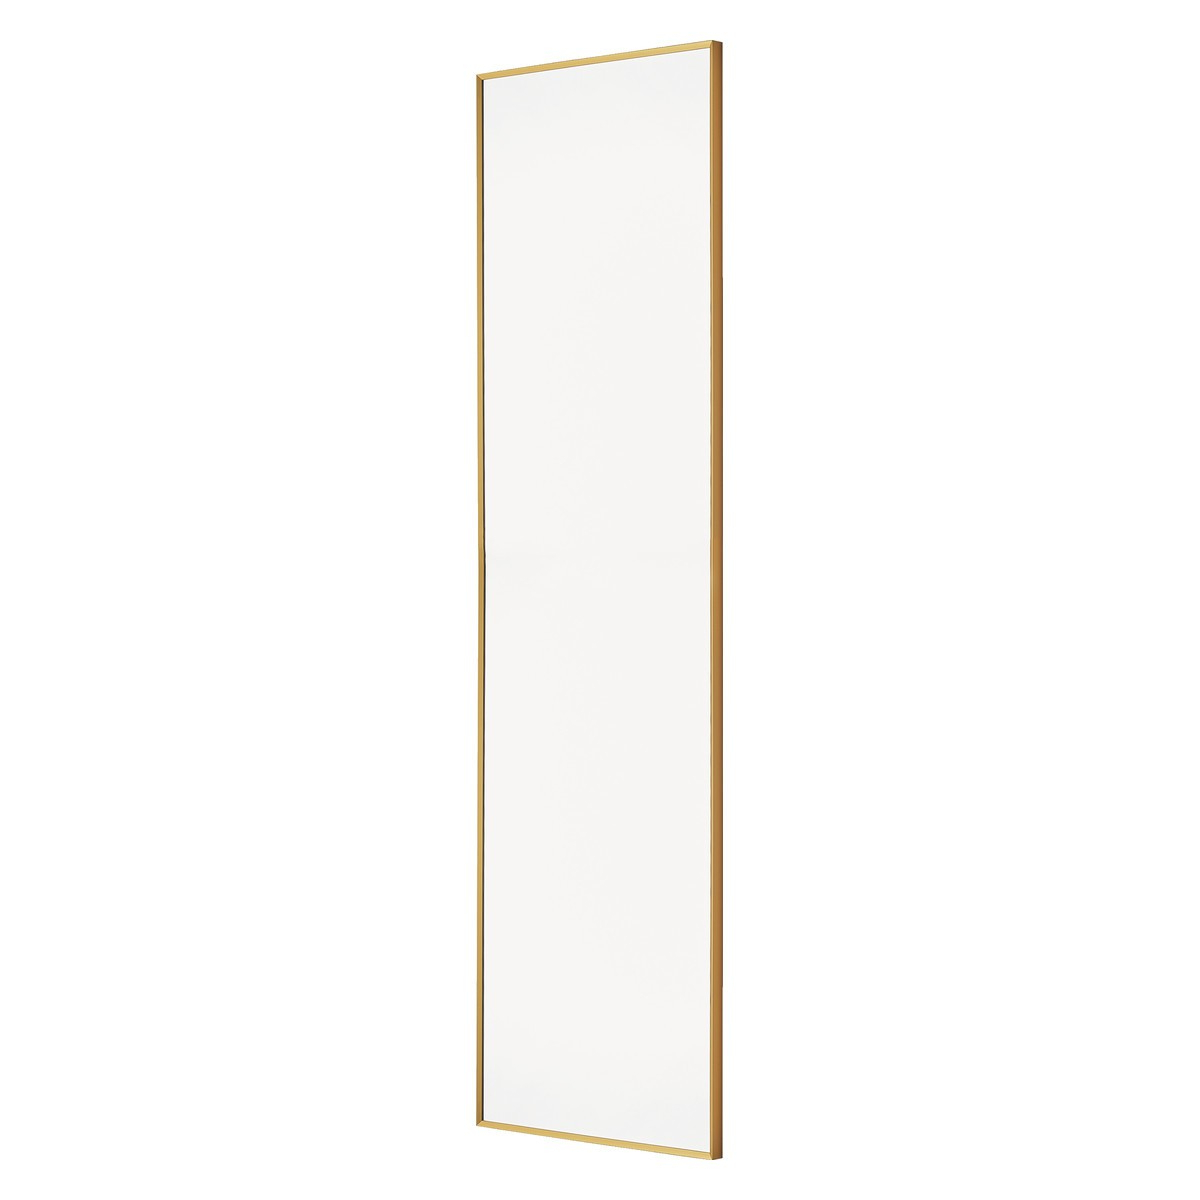 Preferred Kupari 40 X 140cm Gold Full Length Wall Mirror With Full Length Wall Mirrors (View 1 of 20)